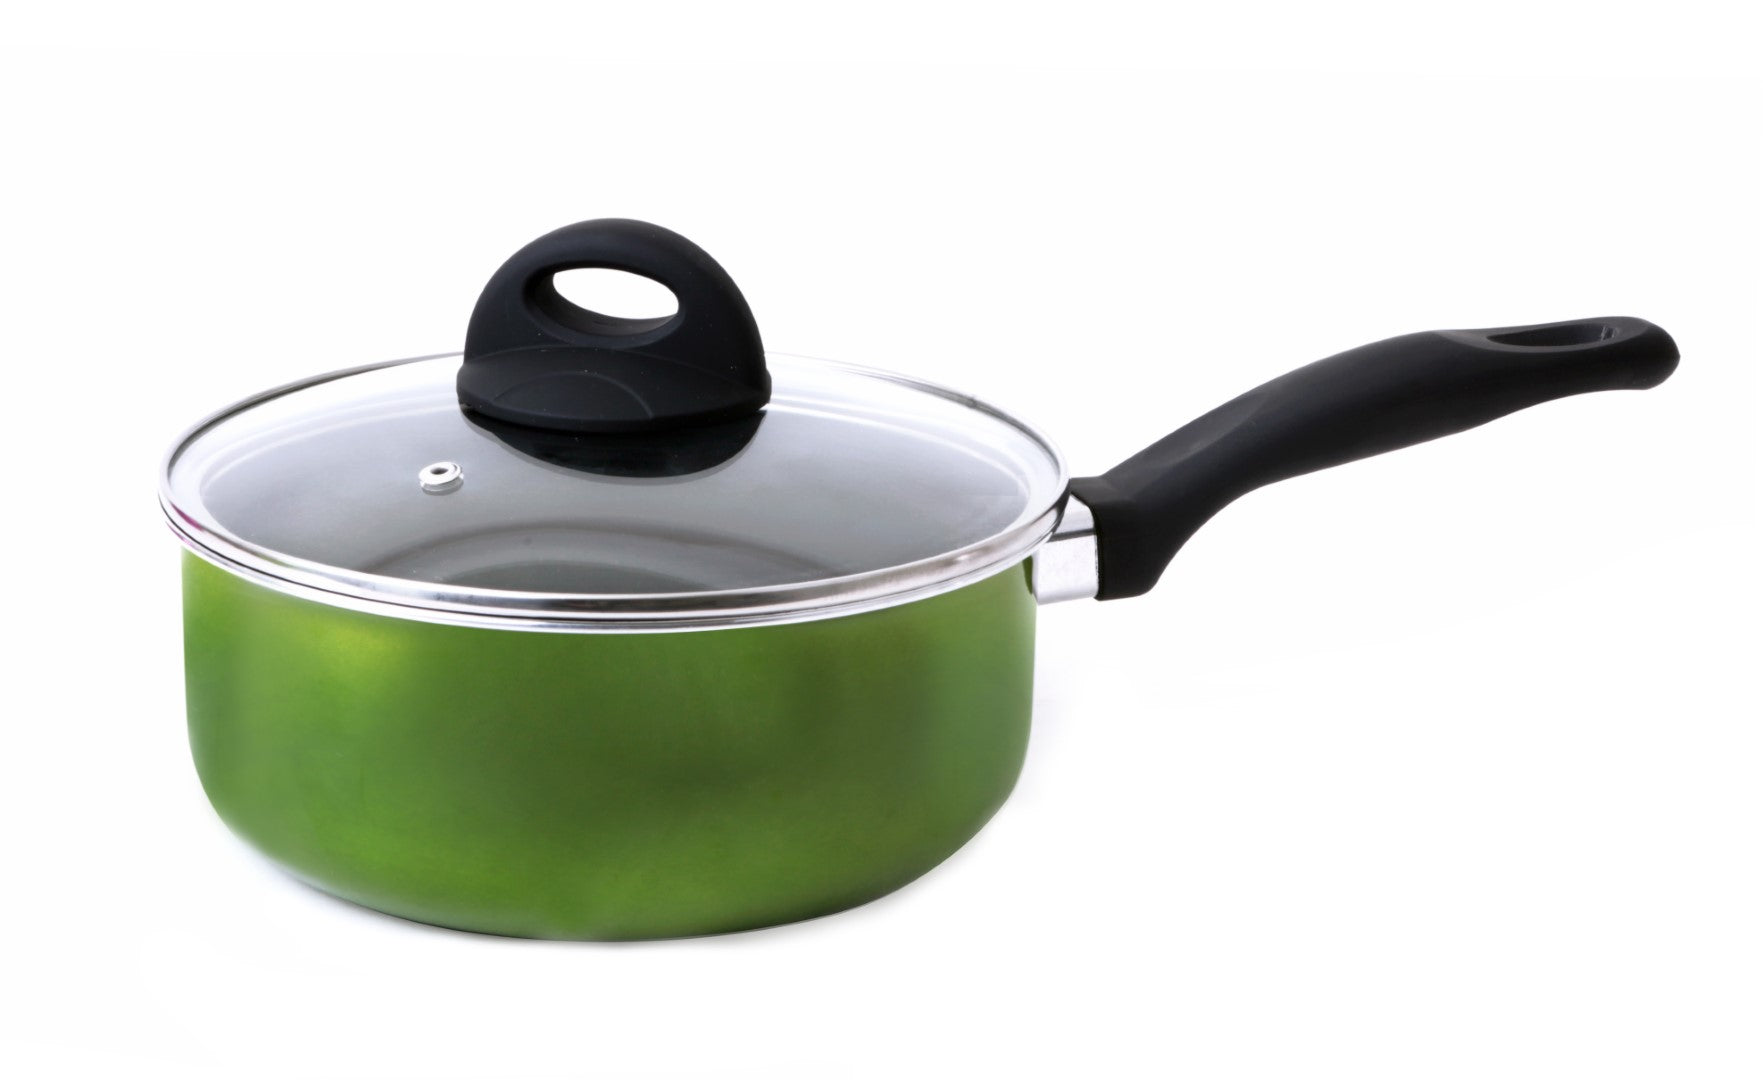 RoyalFord RF6953 Non-stick Sauce Pan With Lid, 16cm